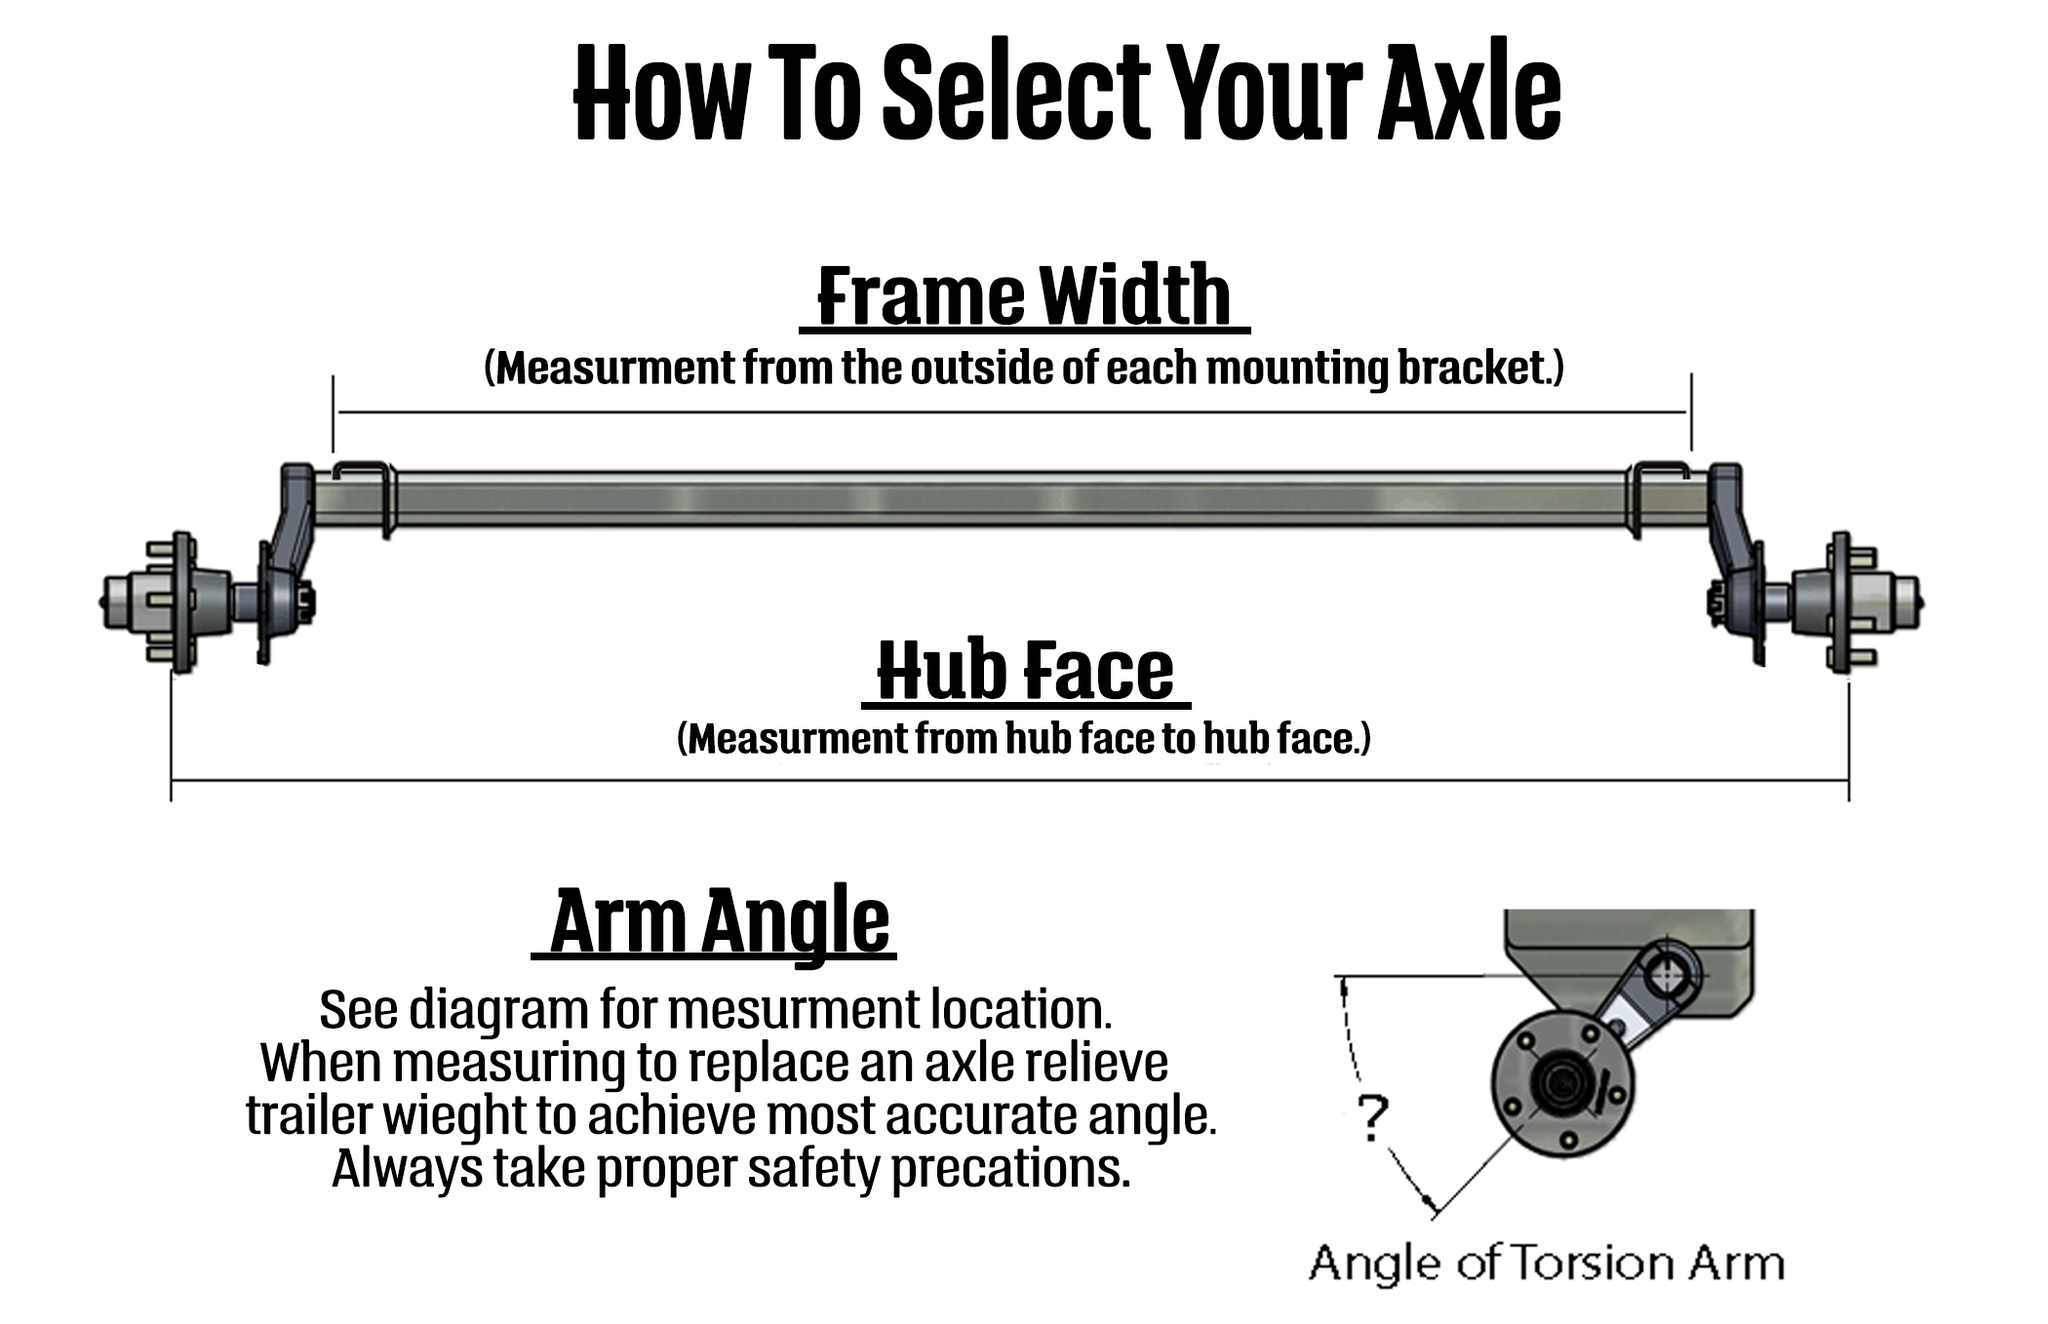 How to select your axle